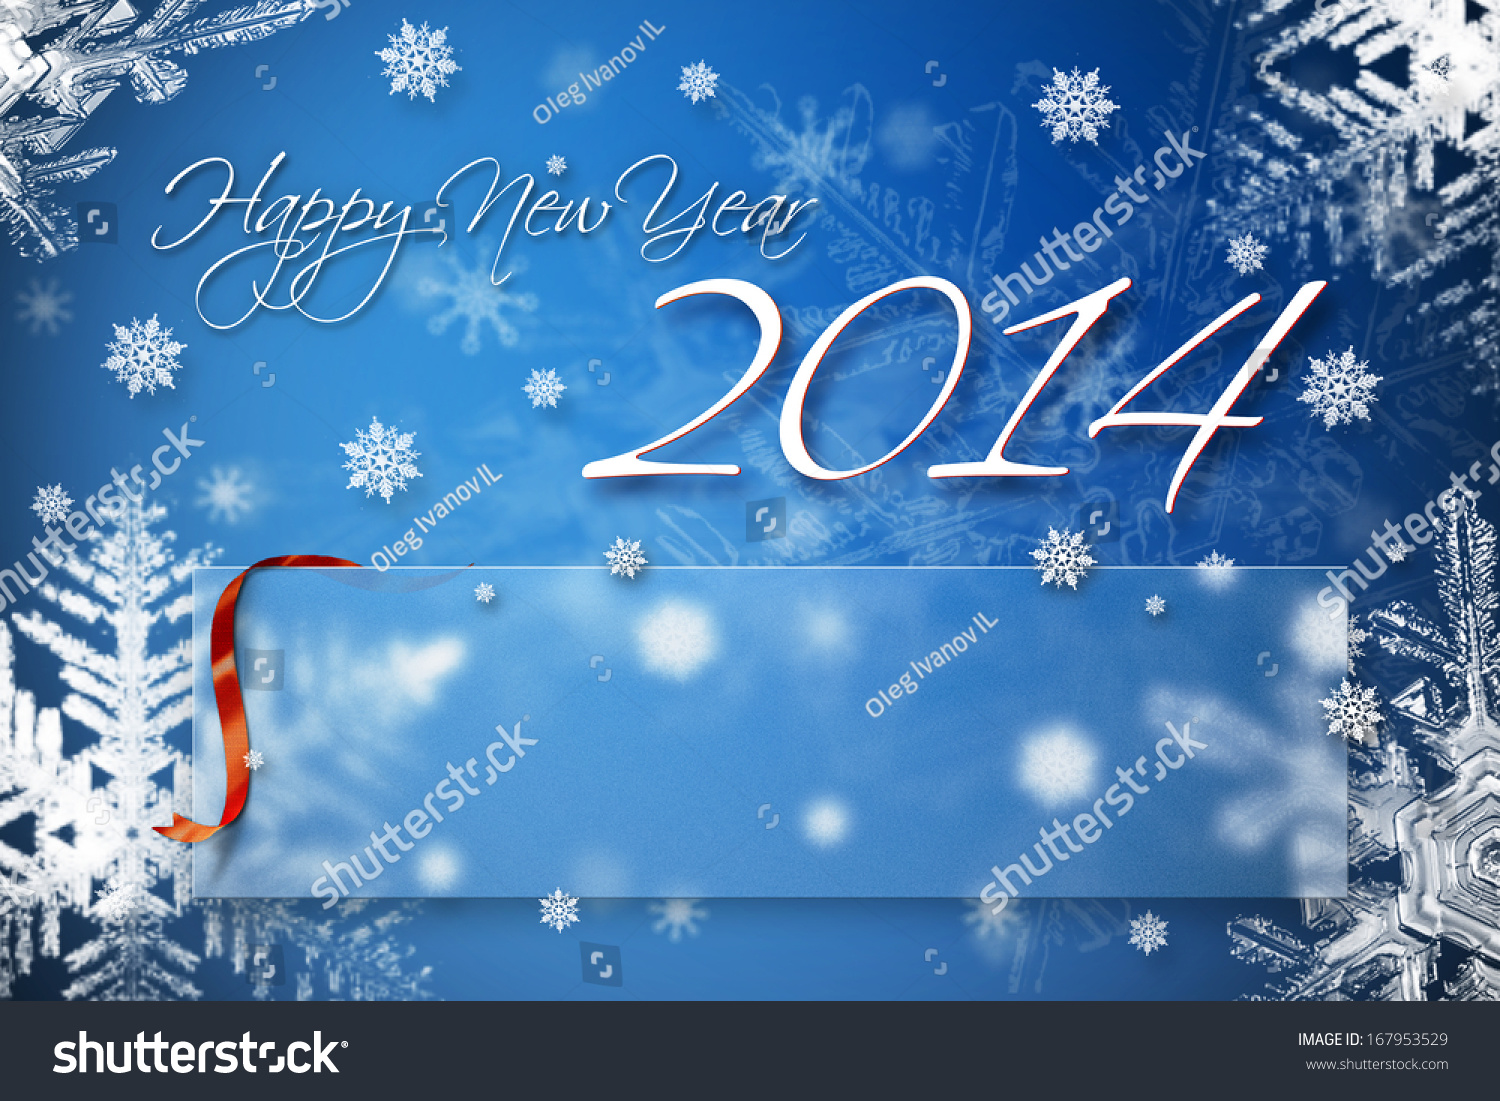 Happy new year 2014 greeting card stock illustration 167953529 happy new year 2014 greeting card with empty text box for your greetings and congratulations m4hsunfo